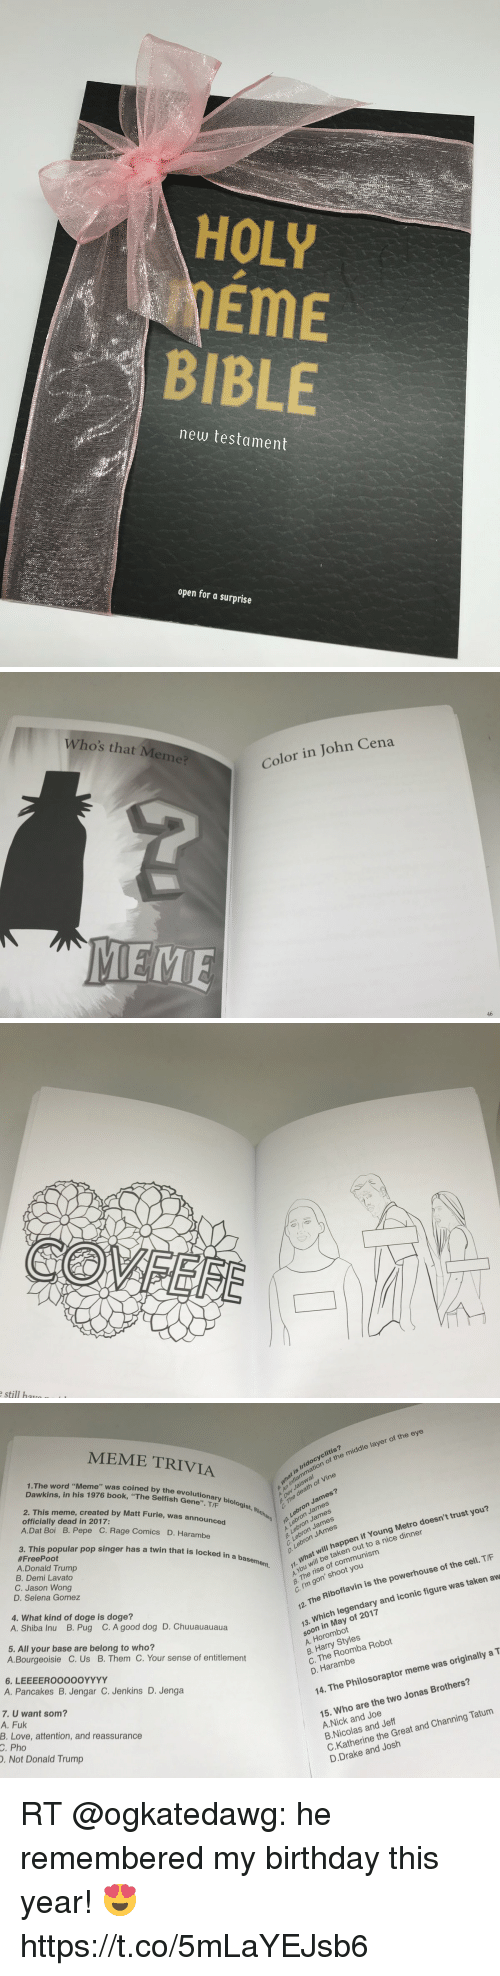 """Philosoraptor Meme: HOLY  EME  BIBLE  new testament  open for a surprise   Who's that Meme?  Color in John Cena  MEME  46   still harO   MEME TRIVIA  1.The word """"Meme"""" was coined by the evol  Dawkins, in his 1976 book, """"The Selfish Gene"""". TE biologis  2. This meme, created by Matt F  officially dead in 2017:  s Iridocyclitis?  mat le mation of the middle layer of the eye  death of Vine  The  A.Dat Boi B. Pepe C. Rage Comics D. Hara  urie, was announced  A ev Jaiswal  3. This popular pop singer has a twin that is locked in a  #FreePoot  Lebron James?  Lebron James  Lebron James  Lebron JAmes  mbe  1.eJmes  A.Donald Trump  B. Demi Lavato  C. Jason Wong  D. Selena Gomez  11, will be taken out to a nice dinner  a The rise of communism  c. I'm gon' shoot you  t will happen if Young Metro doesn't trust you?  Wha  4. What kind of doge is doge?  A. Shiba Inu B. Pug C. A good dog D. Chuuauauaua  5. All your base are belong to who?  42. The Riboflavin is the powerhouse of the c  13. Which legendary and iconic figure was taken aw  soon in May of 2017  A. Horombot  B. Harry Styles  C. The Roomba Robot  D. Harambe  A.Bourgeoisie C. Us B. Them C. Your sense of entitlement  A. Pancakes B. Jengar C. Jenkins D. Jenga  7. U want som?  A. Fuk  B. Love, attention, and reassurance  14. The Philosoraptor meme was originally a T  C. Pho  . Not Donald Trump  15. Who are the two Jonas Brothers?  A.Nick and Joe  B.Nicolas and Jeff  C.Katherine the Great and Channing Tatum  D.Drake and Josh RT @ogkatedawg: he remembered my birthday this year! 😍 https://t.co/5mLaYEJsb6"""